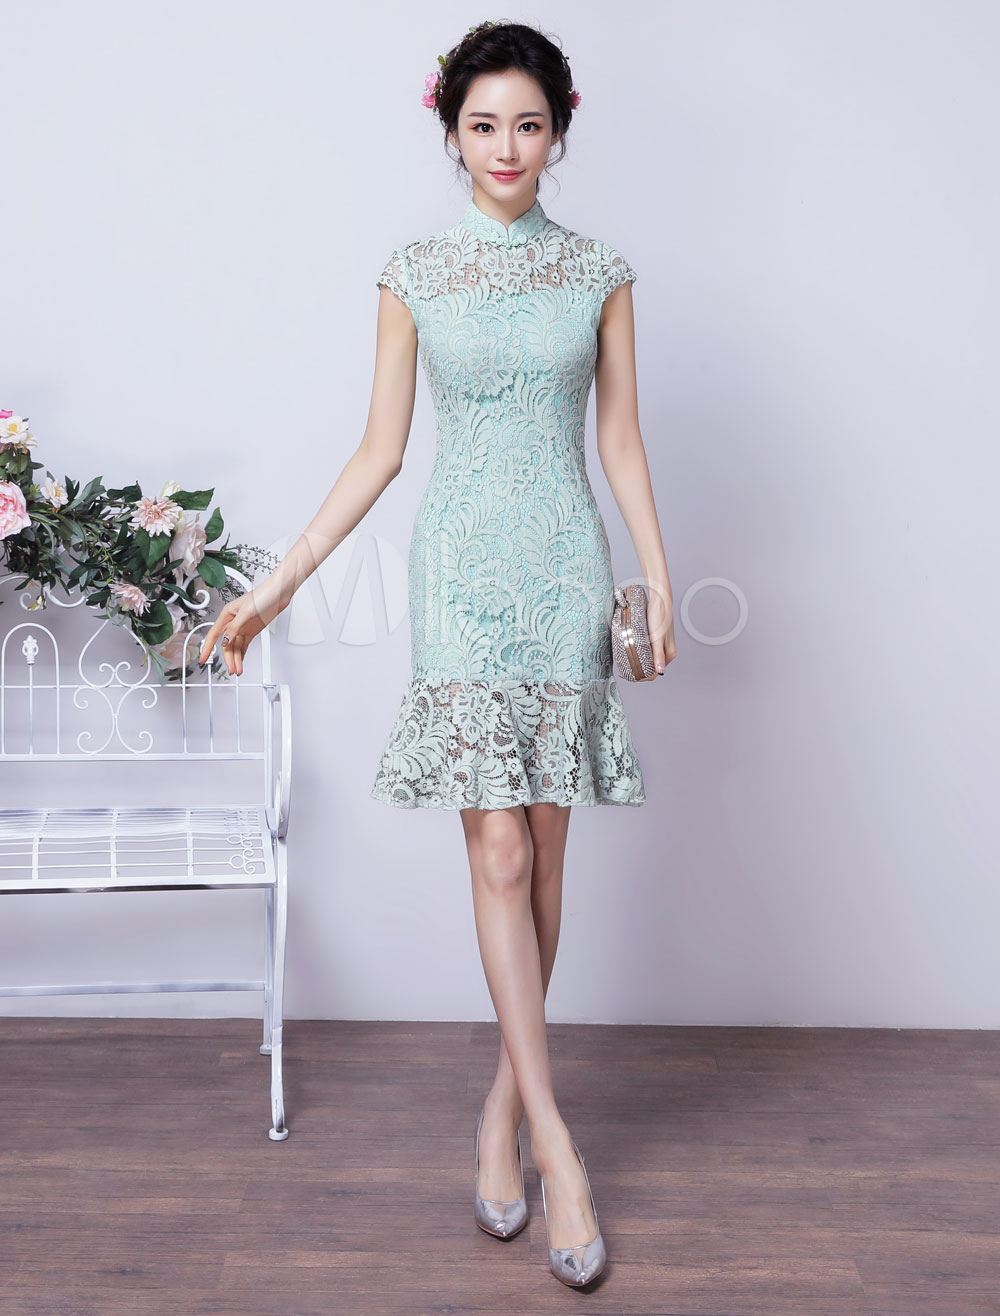 Sheath Cocktail Dress Mint Green Lace Mother Of The Bride Dress Ruffles Short Wedding Guest Dresses